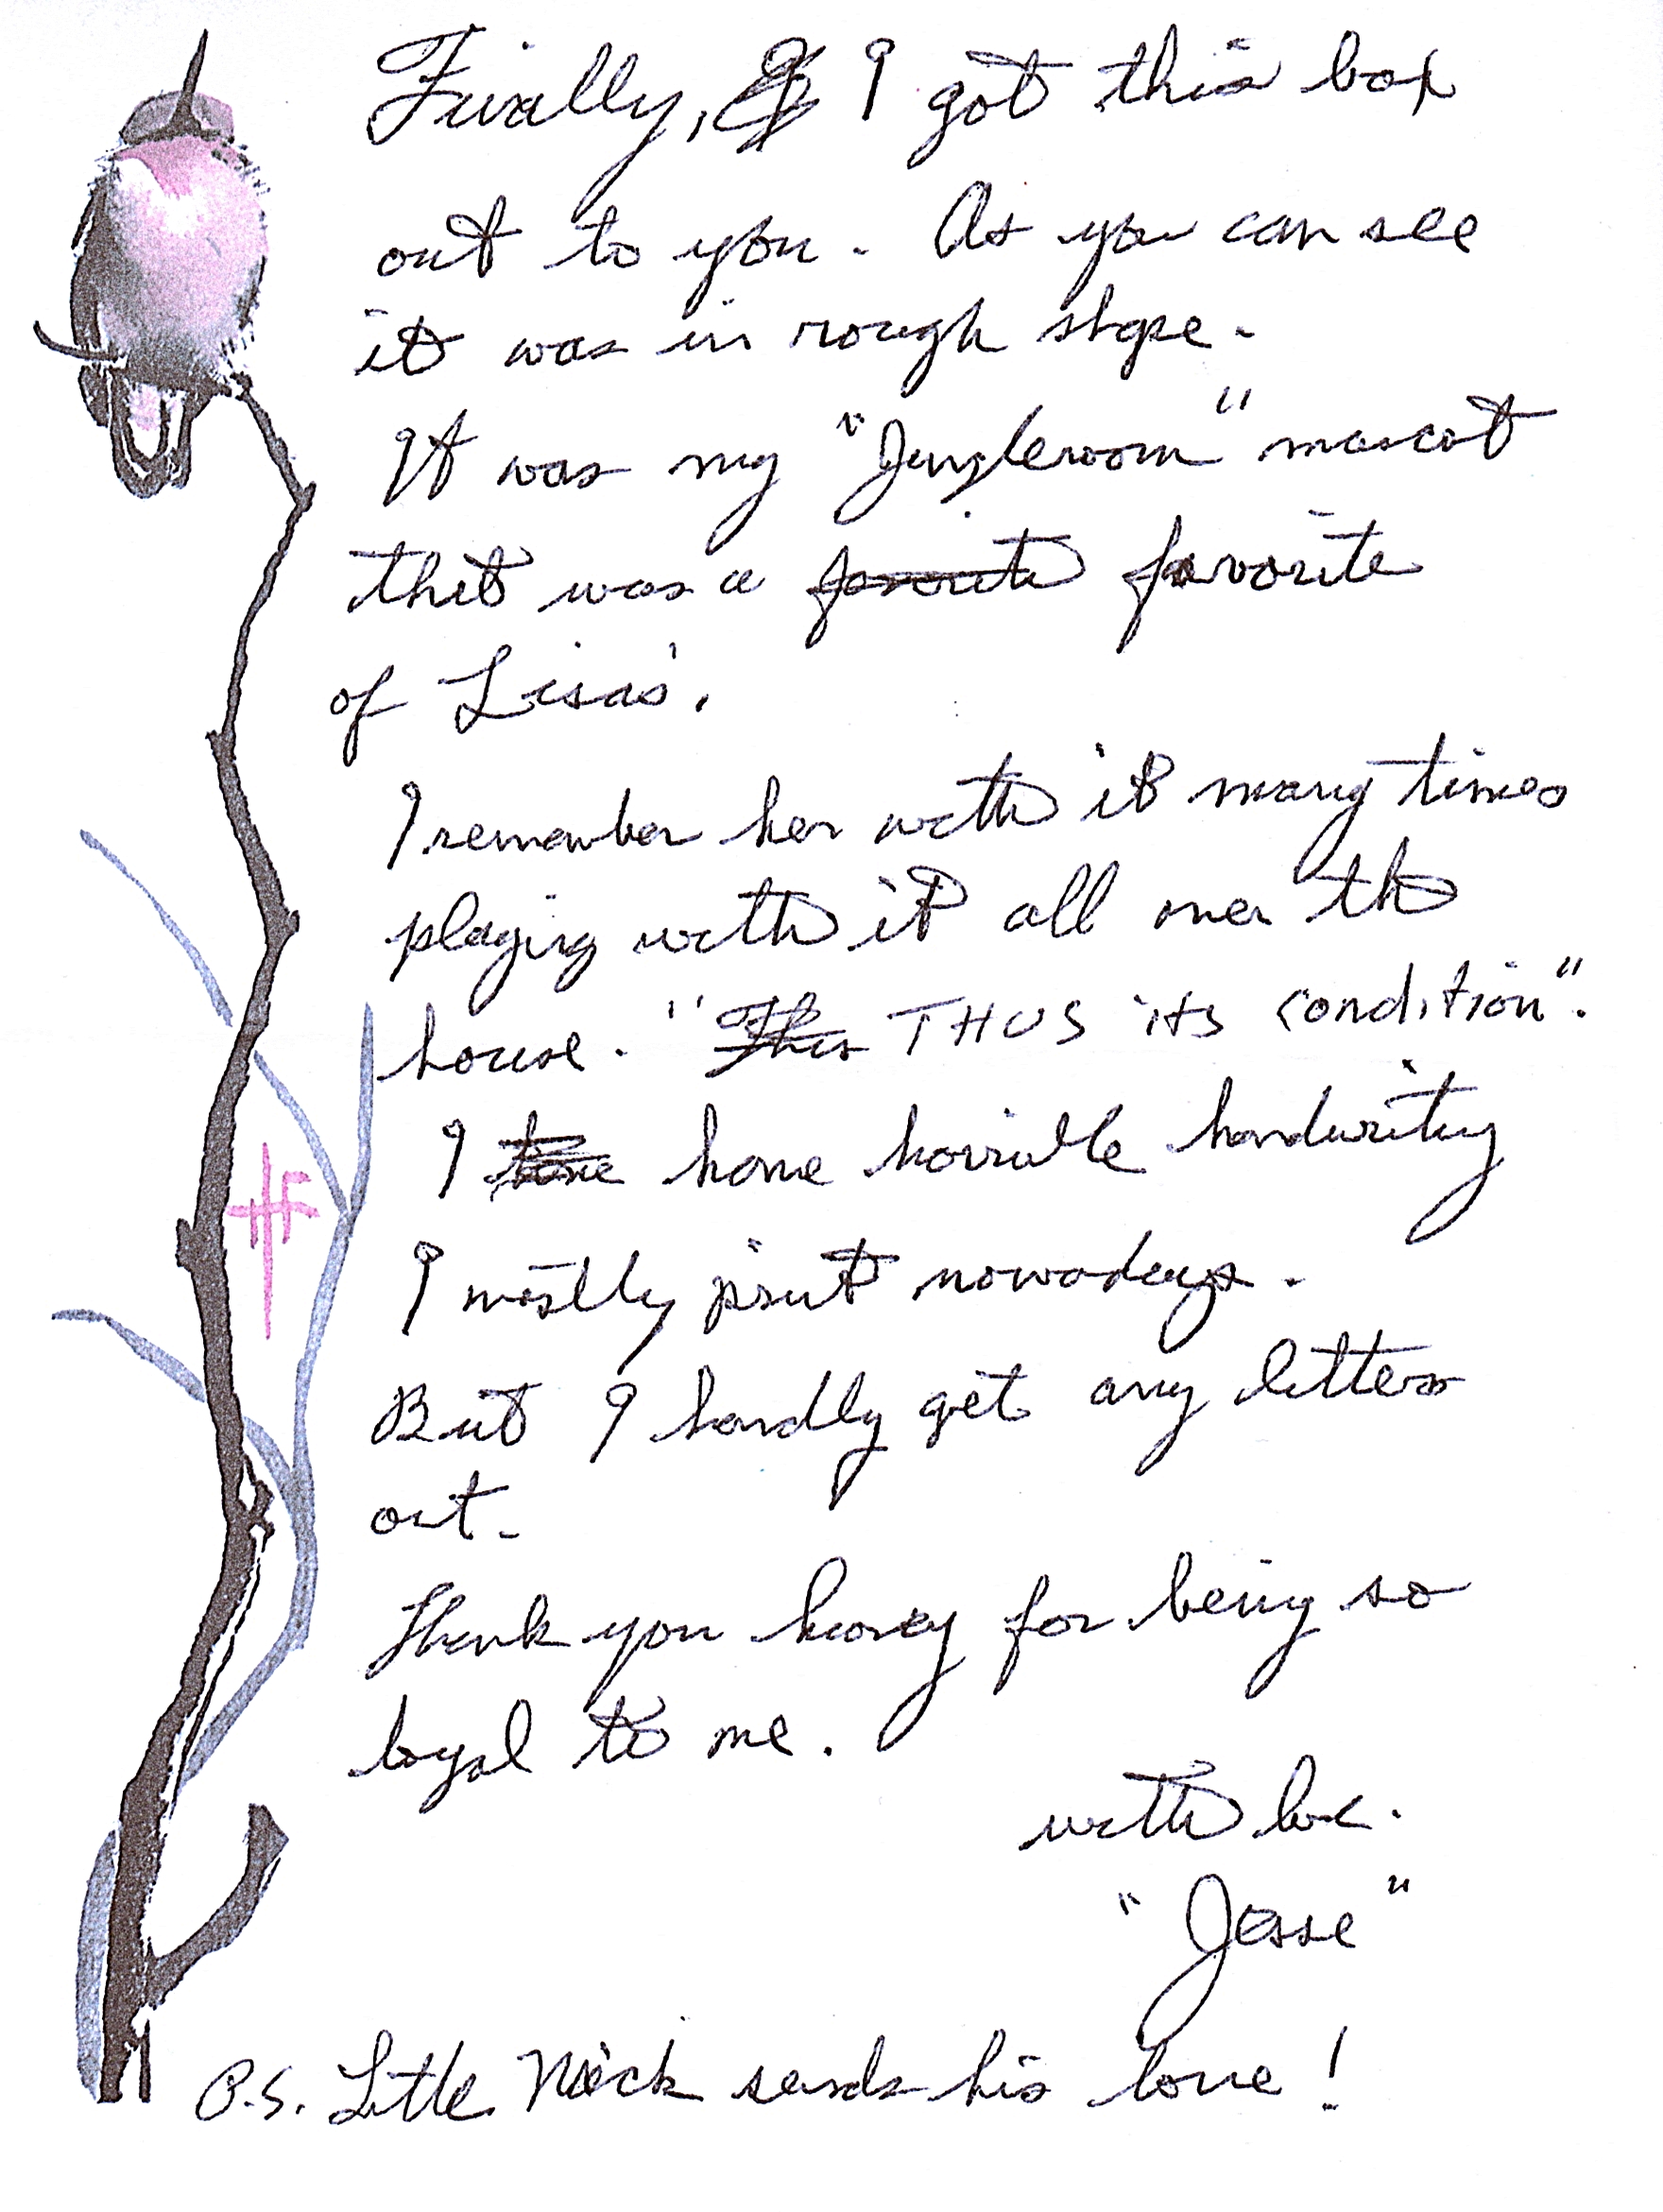 Jesse's letter which accompanied the tiger